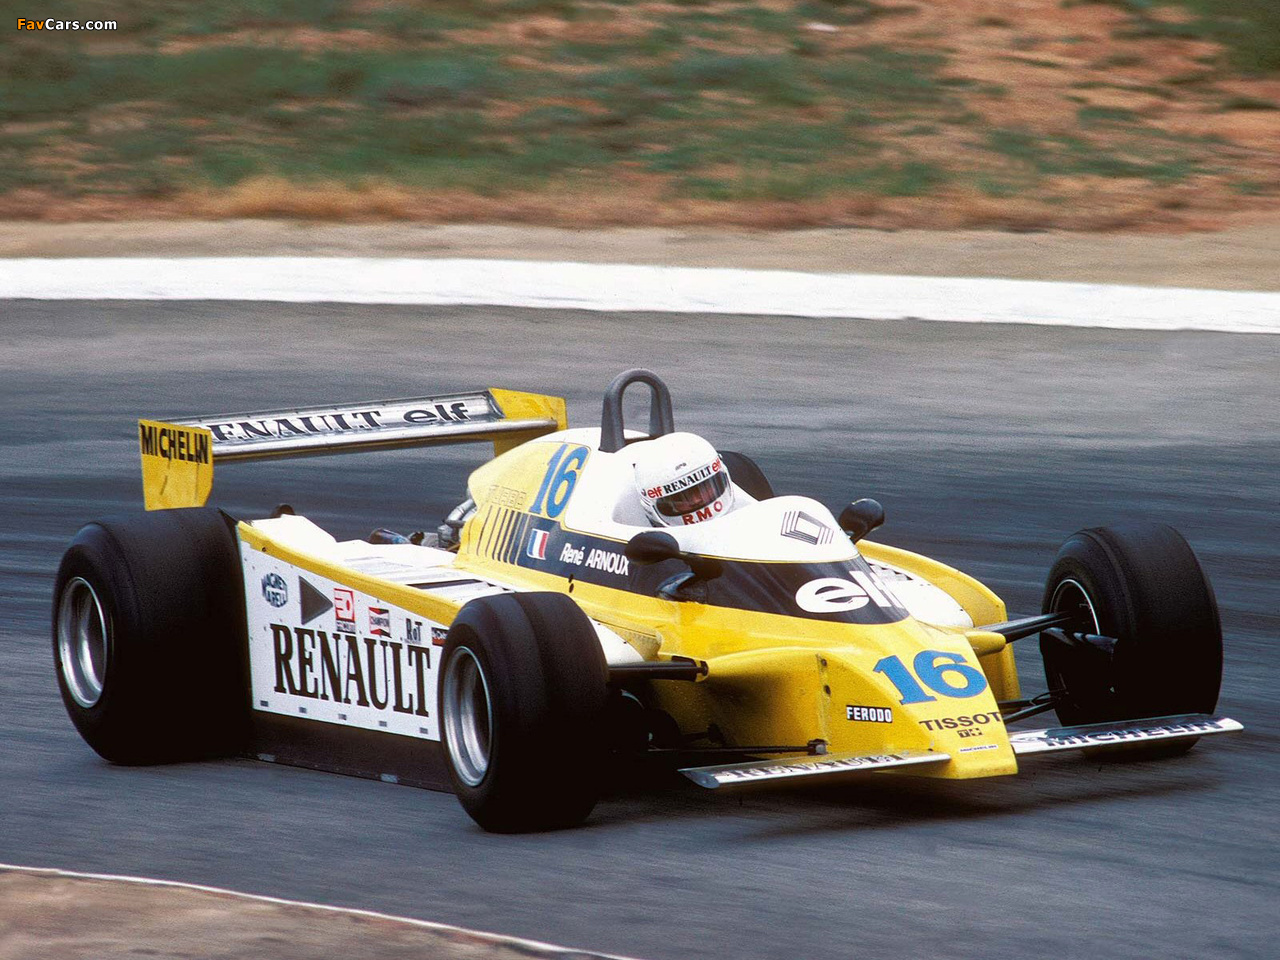 Renault rs10 photo - 2